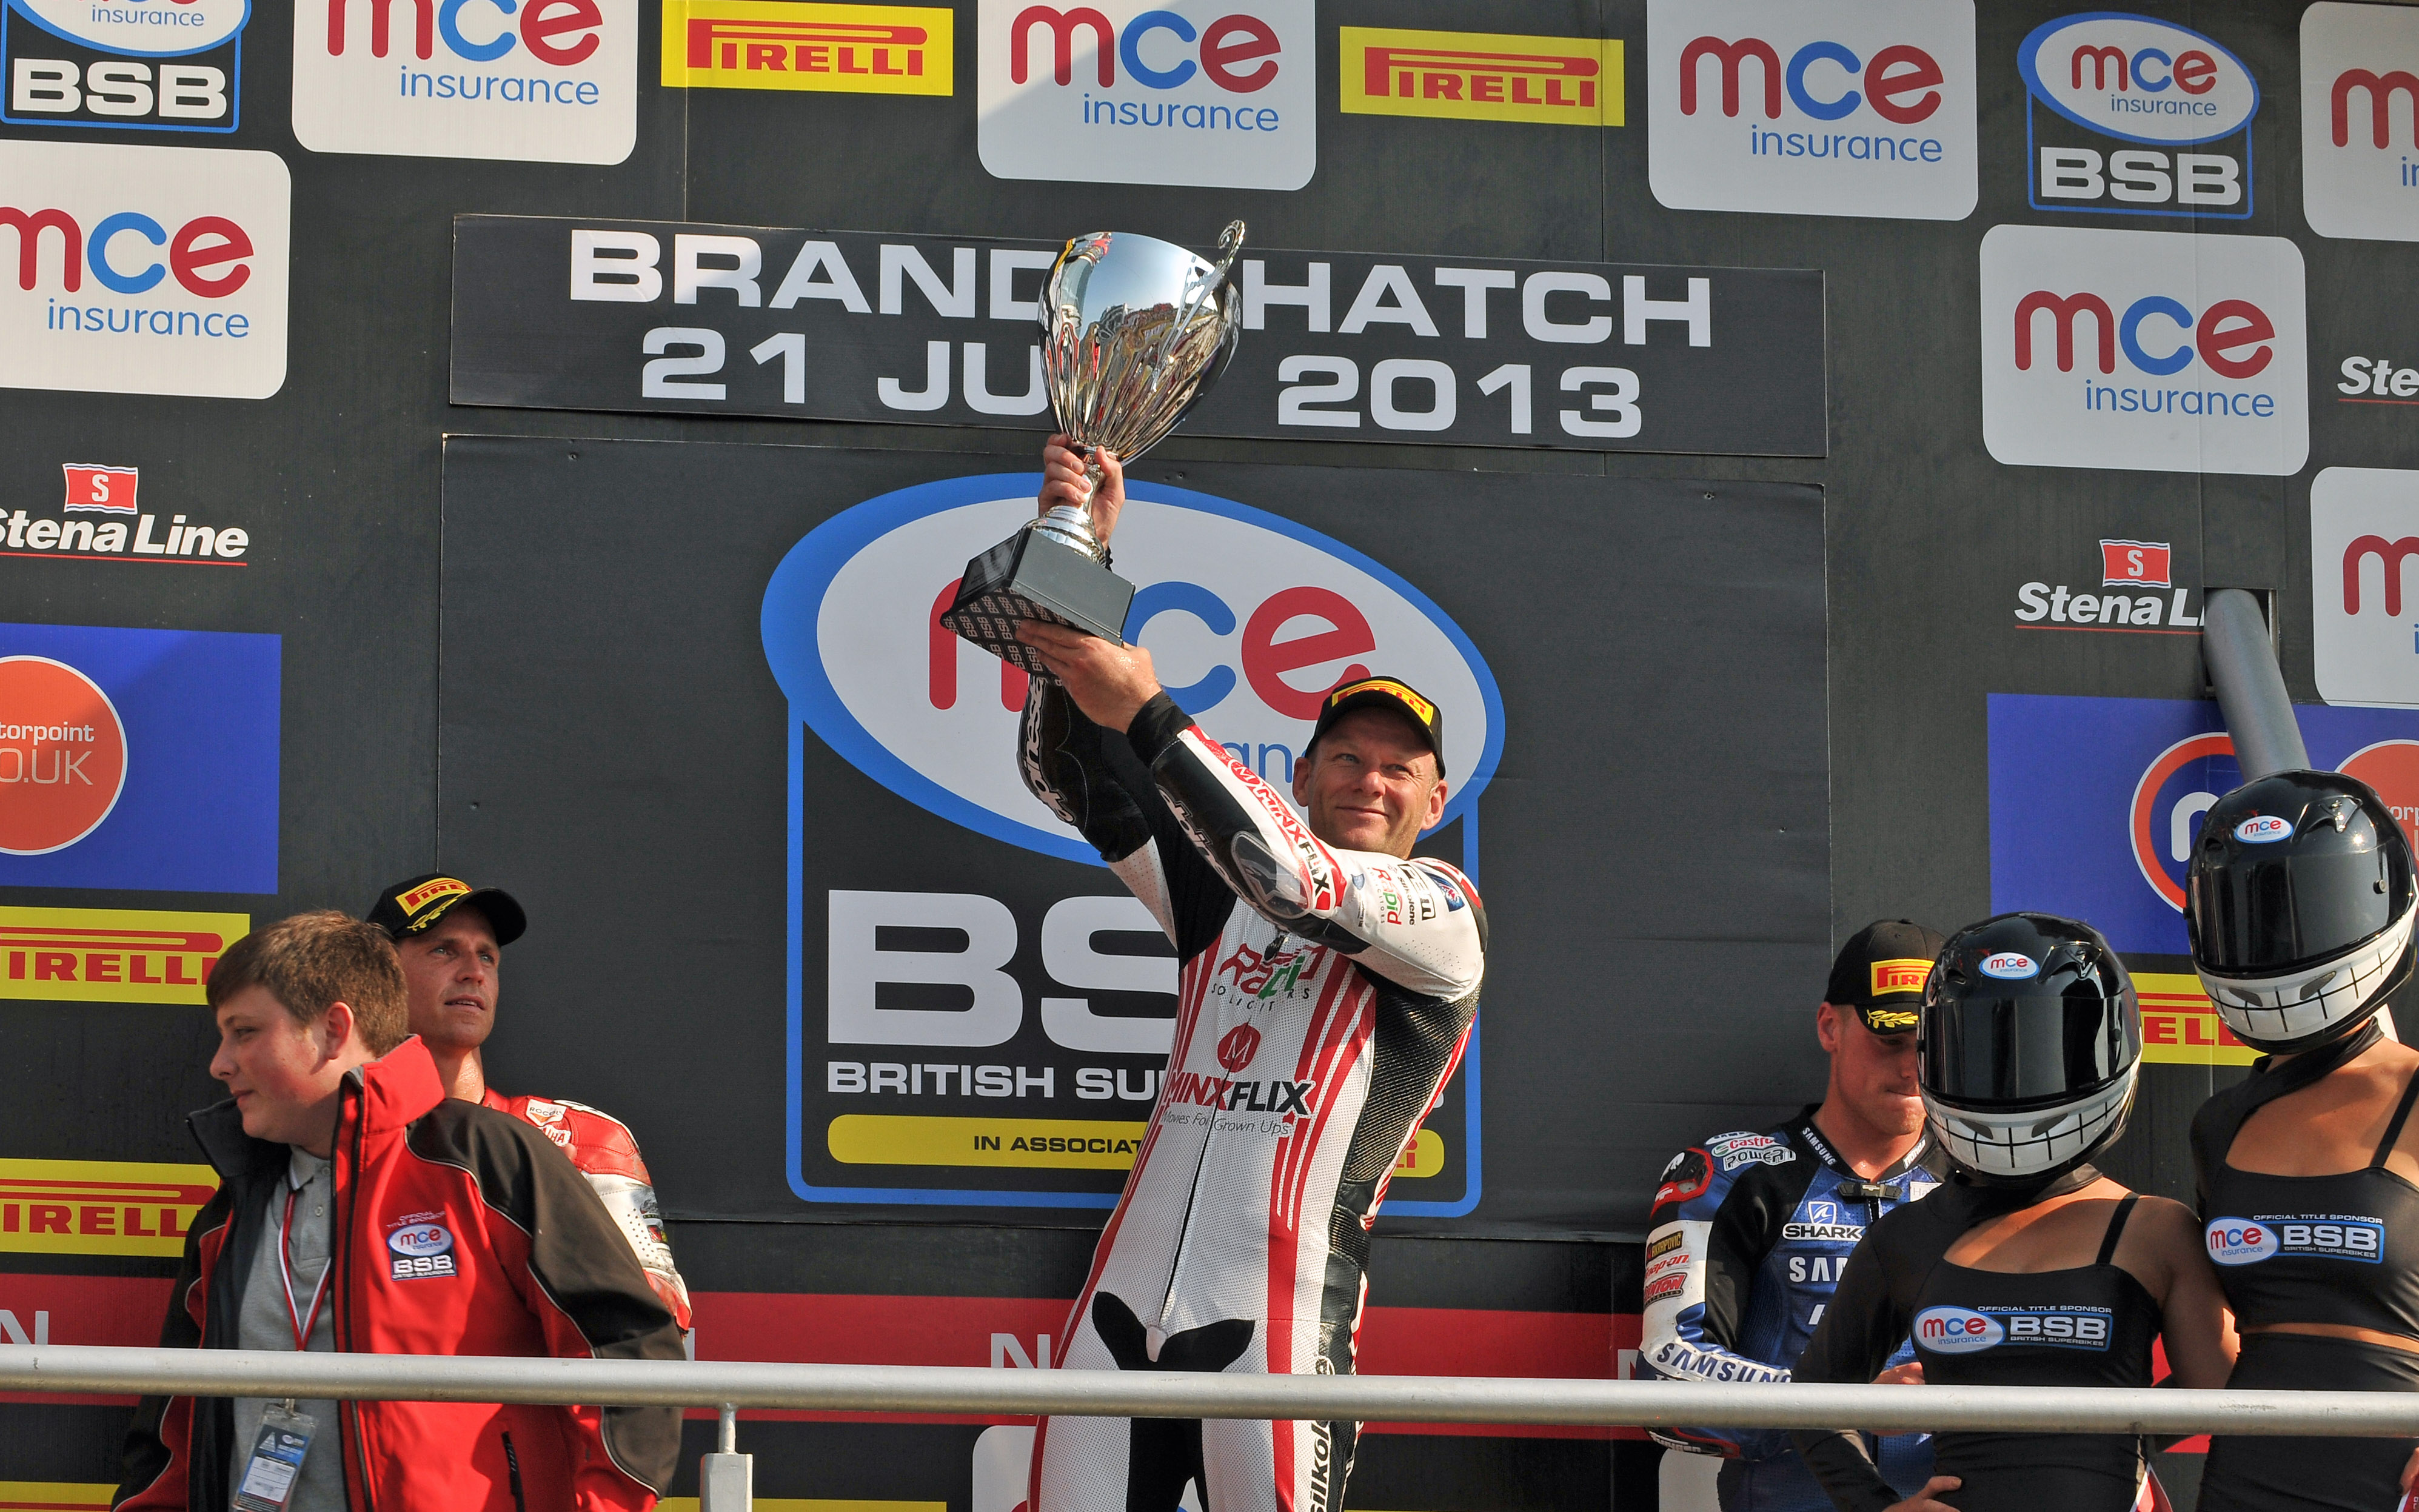 BSB 2013: Championship standings after Brands Hatch GP